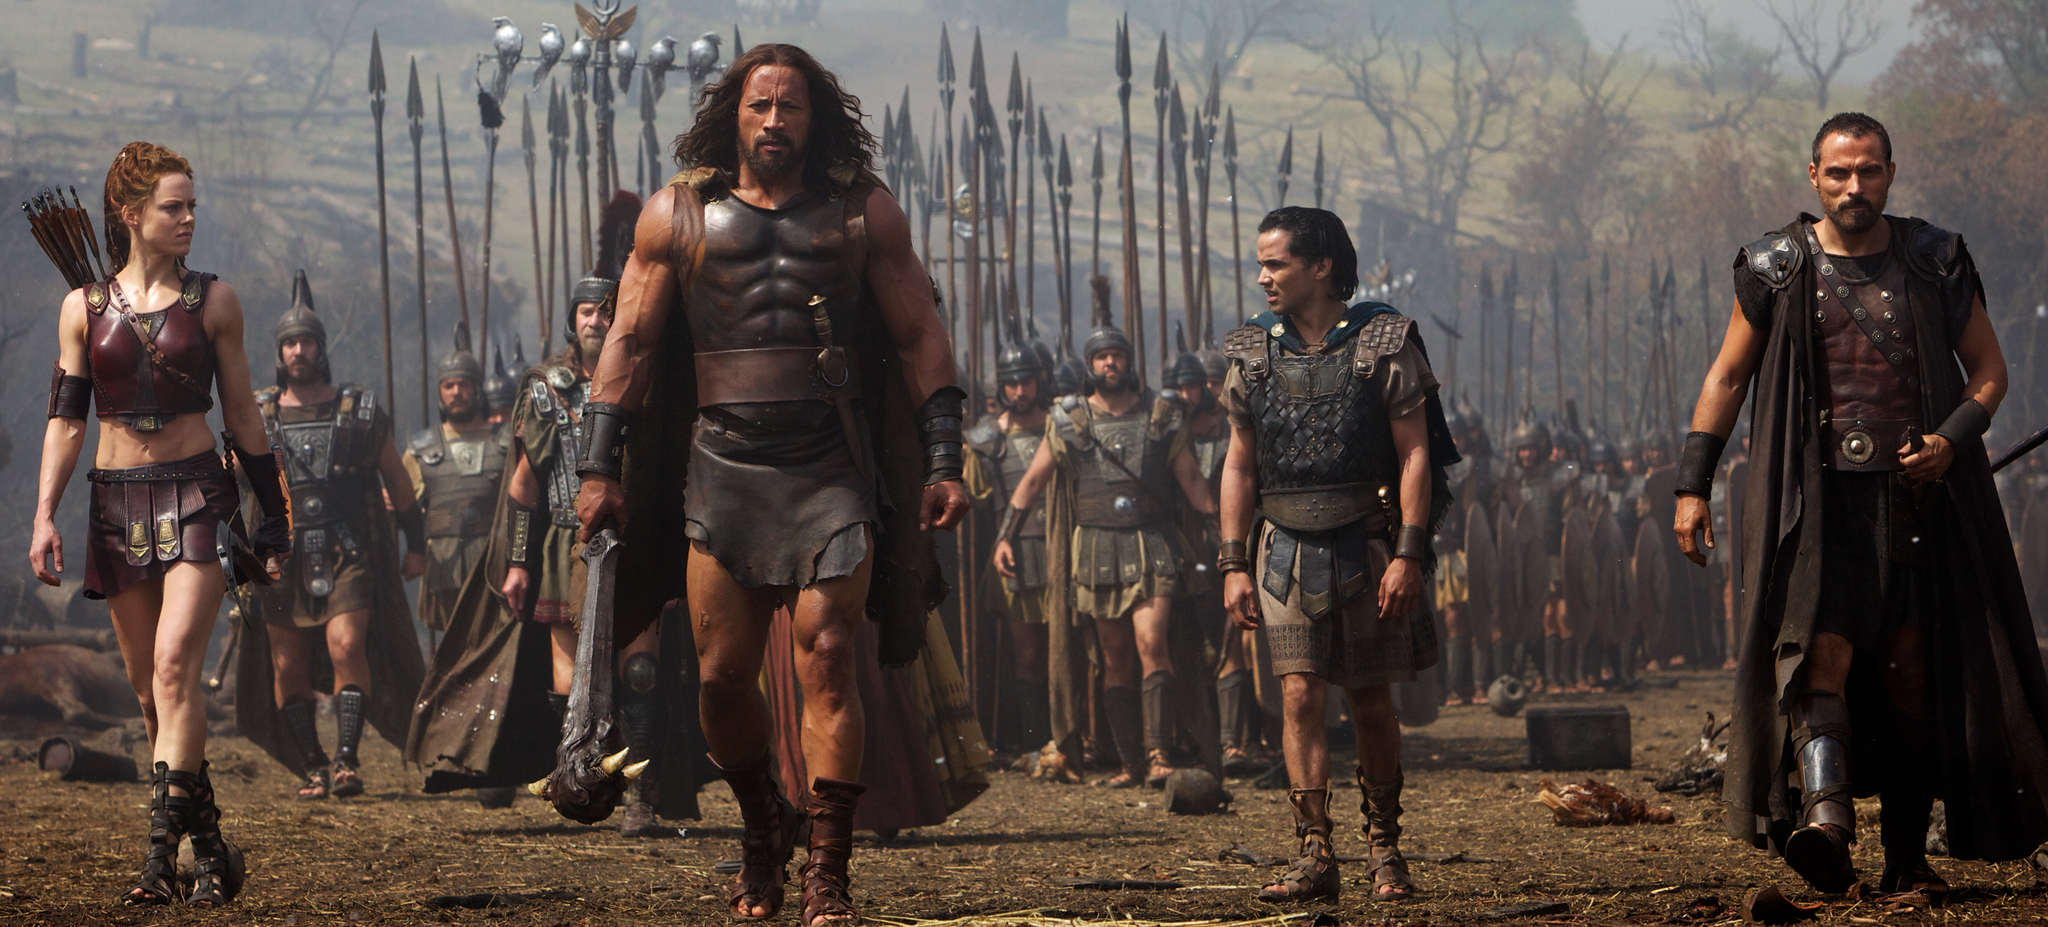 Rufus Sewell, Dwayne Johnson, Ingrid Bolsø Berdal, and Reece Ritchie in Hercules (2014)